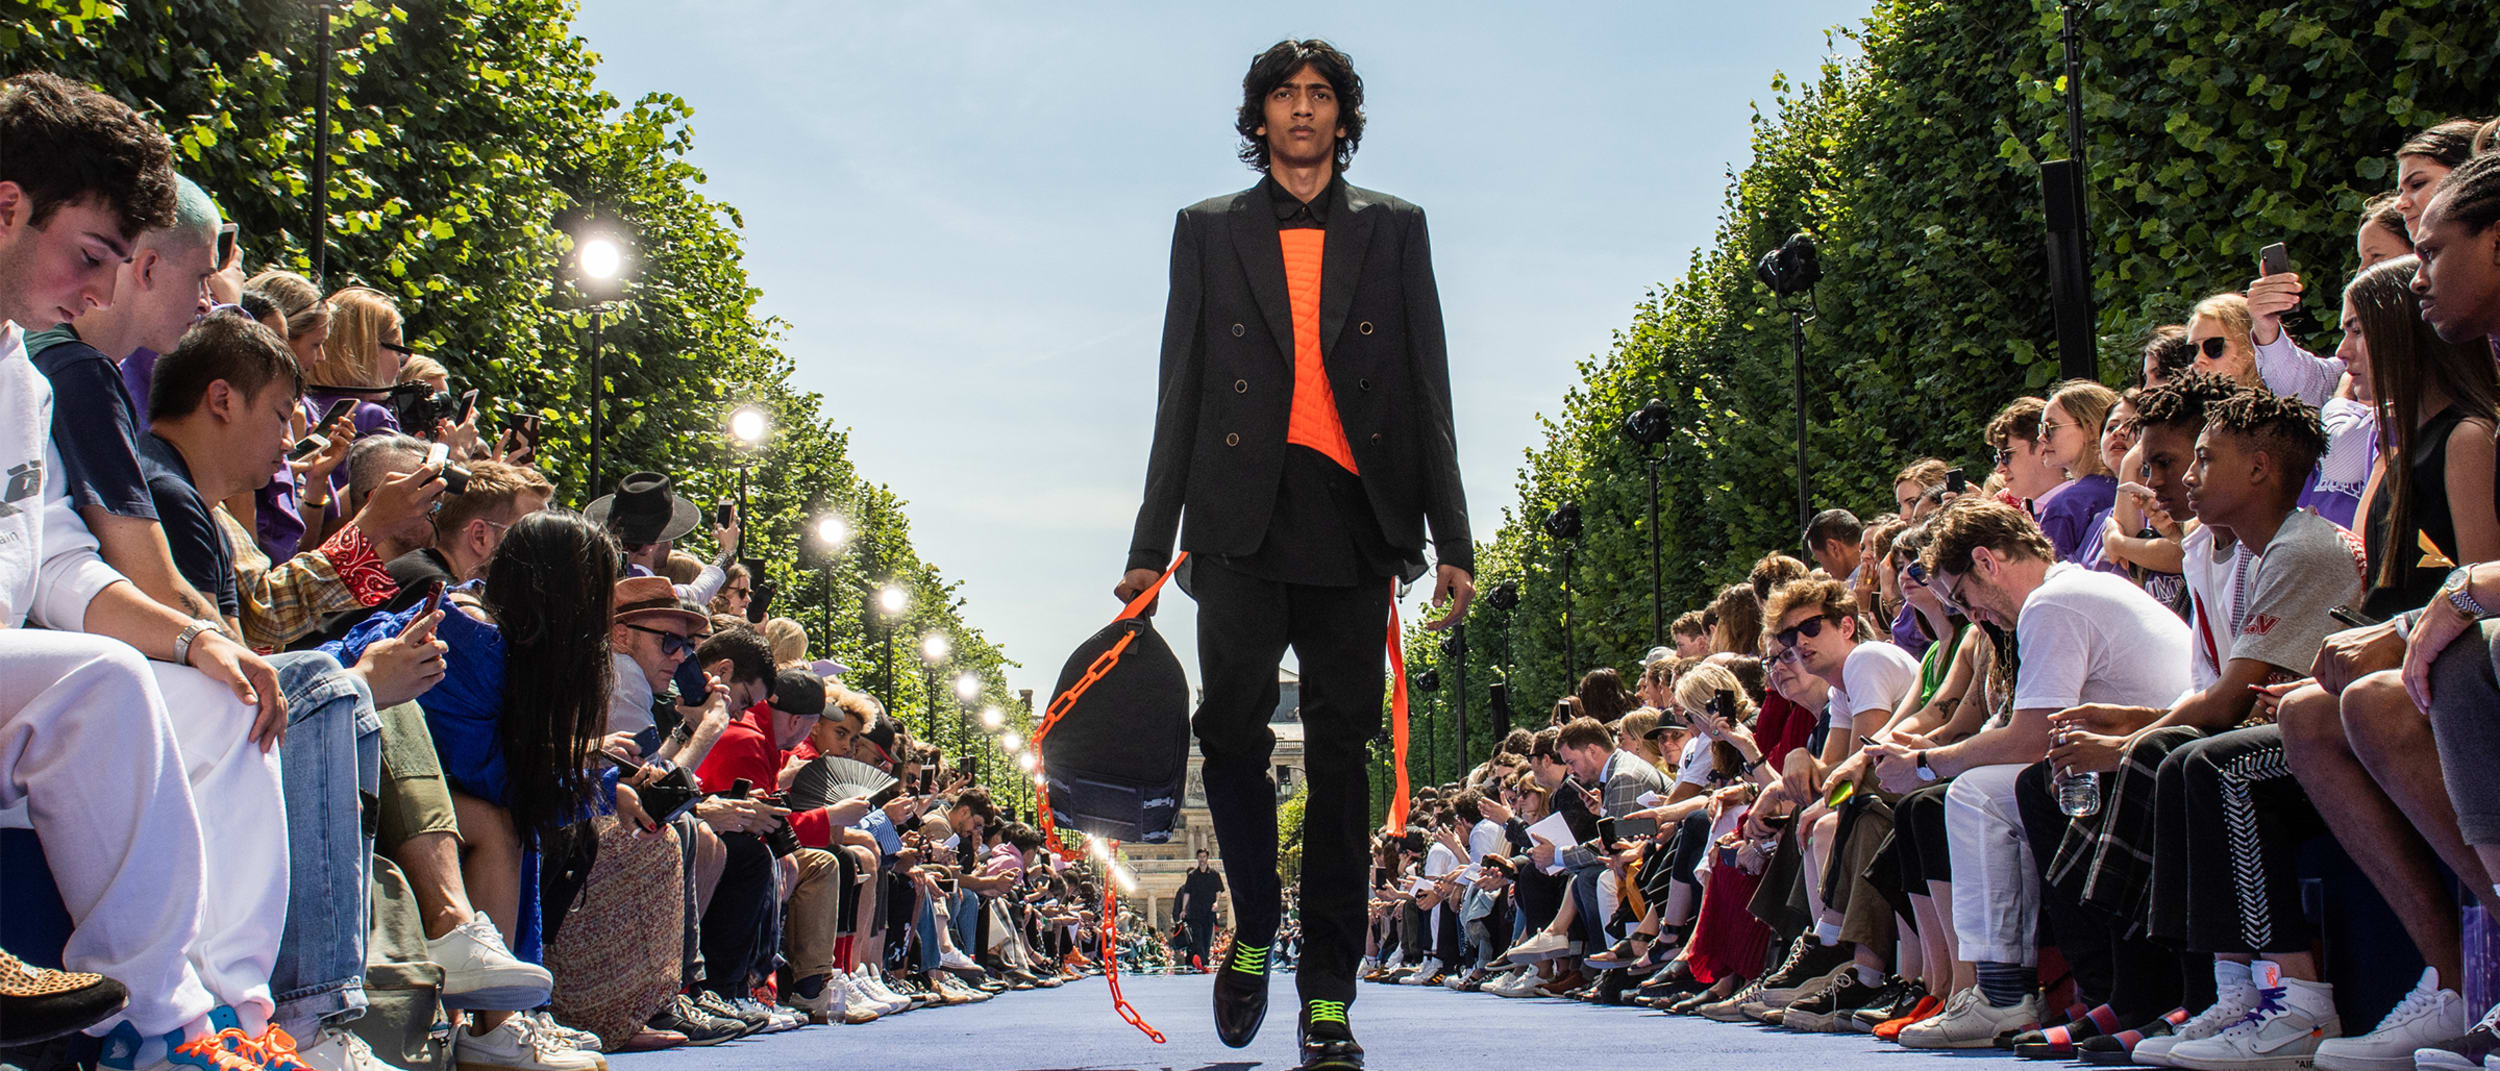 Louis Vuitton: top trends from the SS19 men's runway